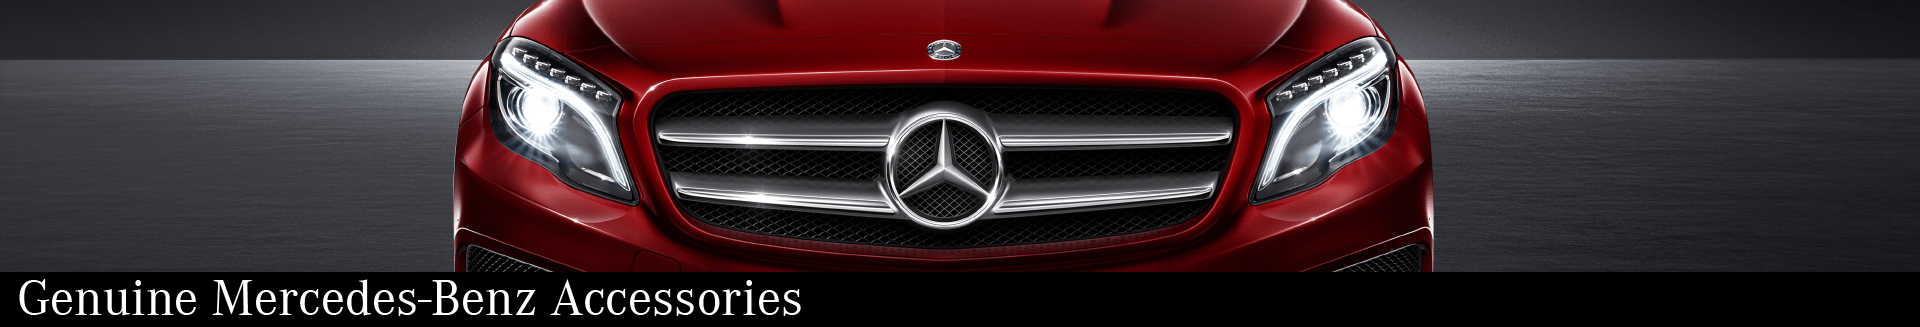 Genuine Mercedes-Benz Accessories